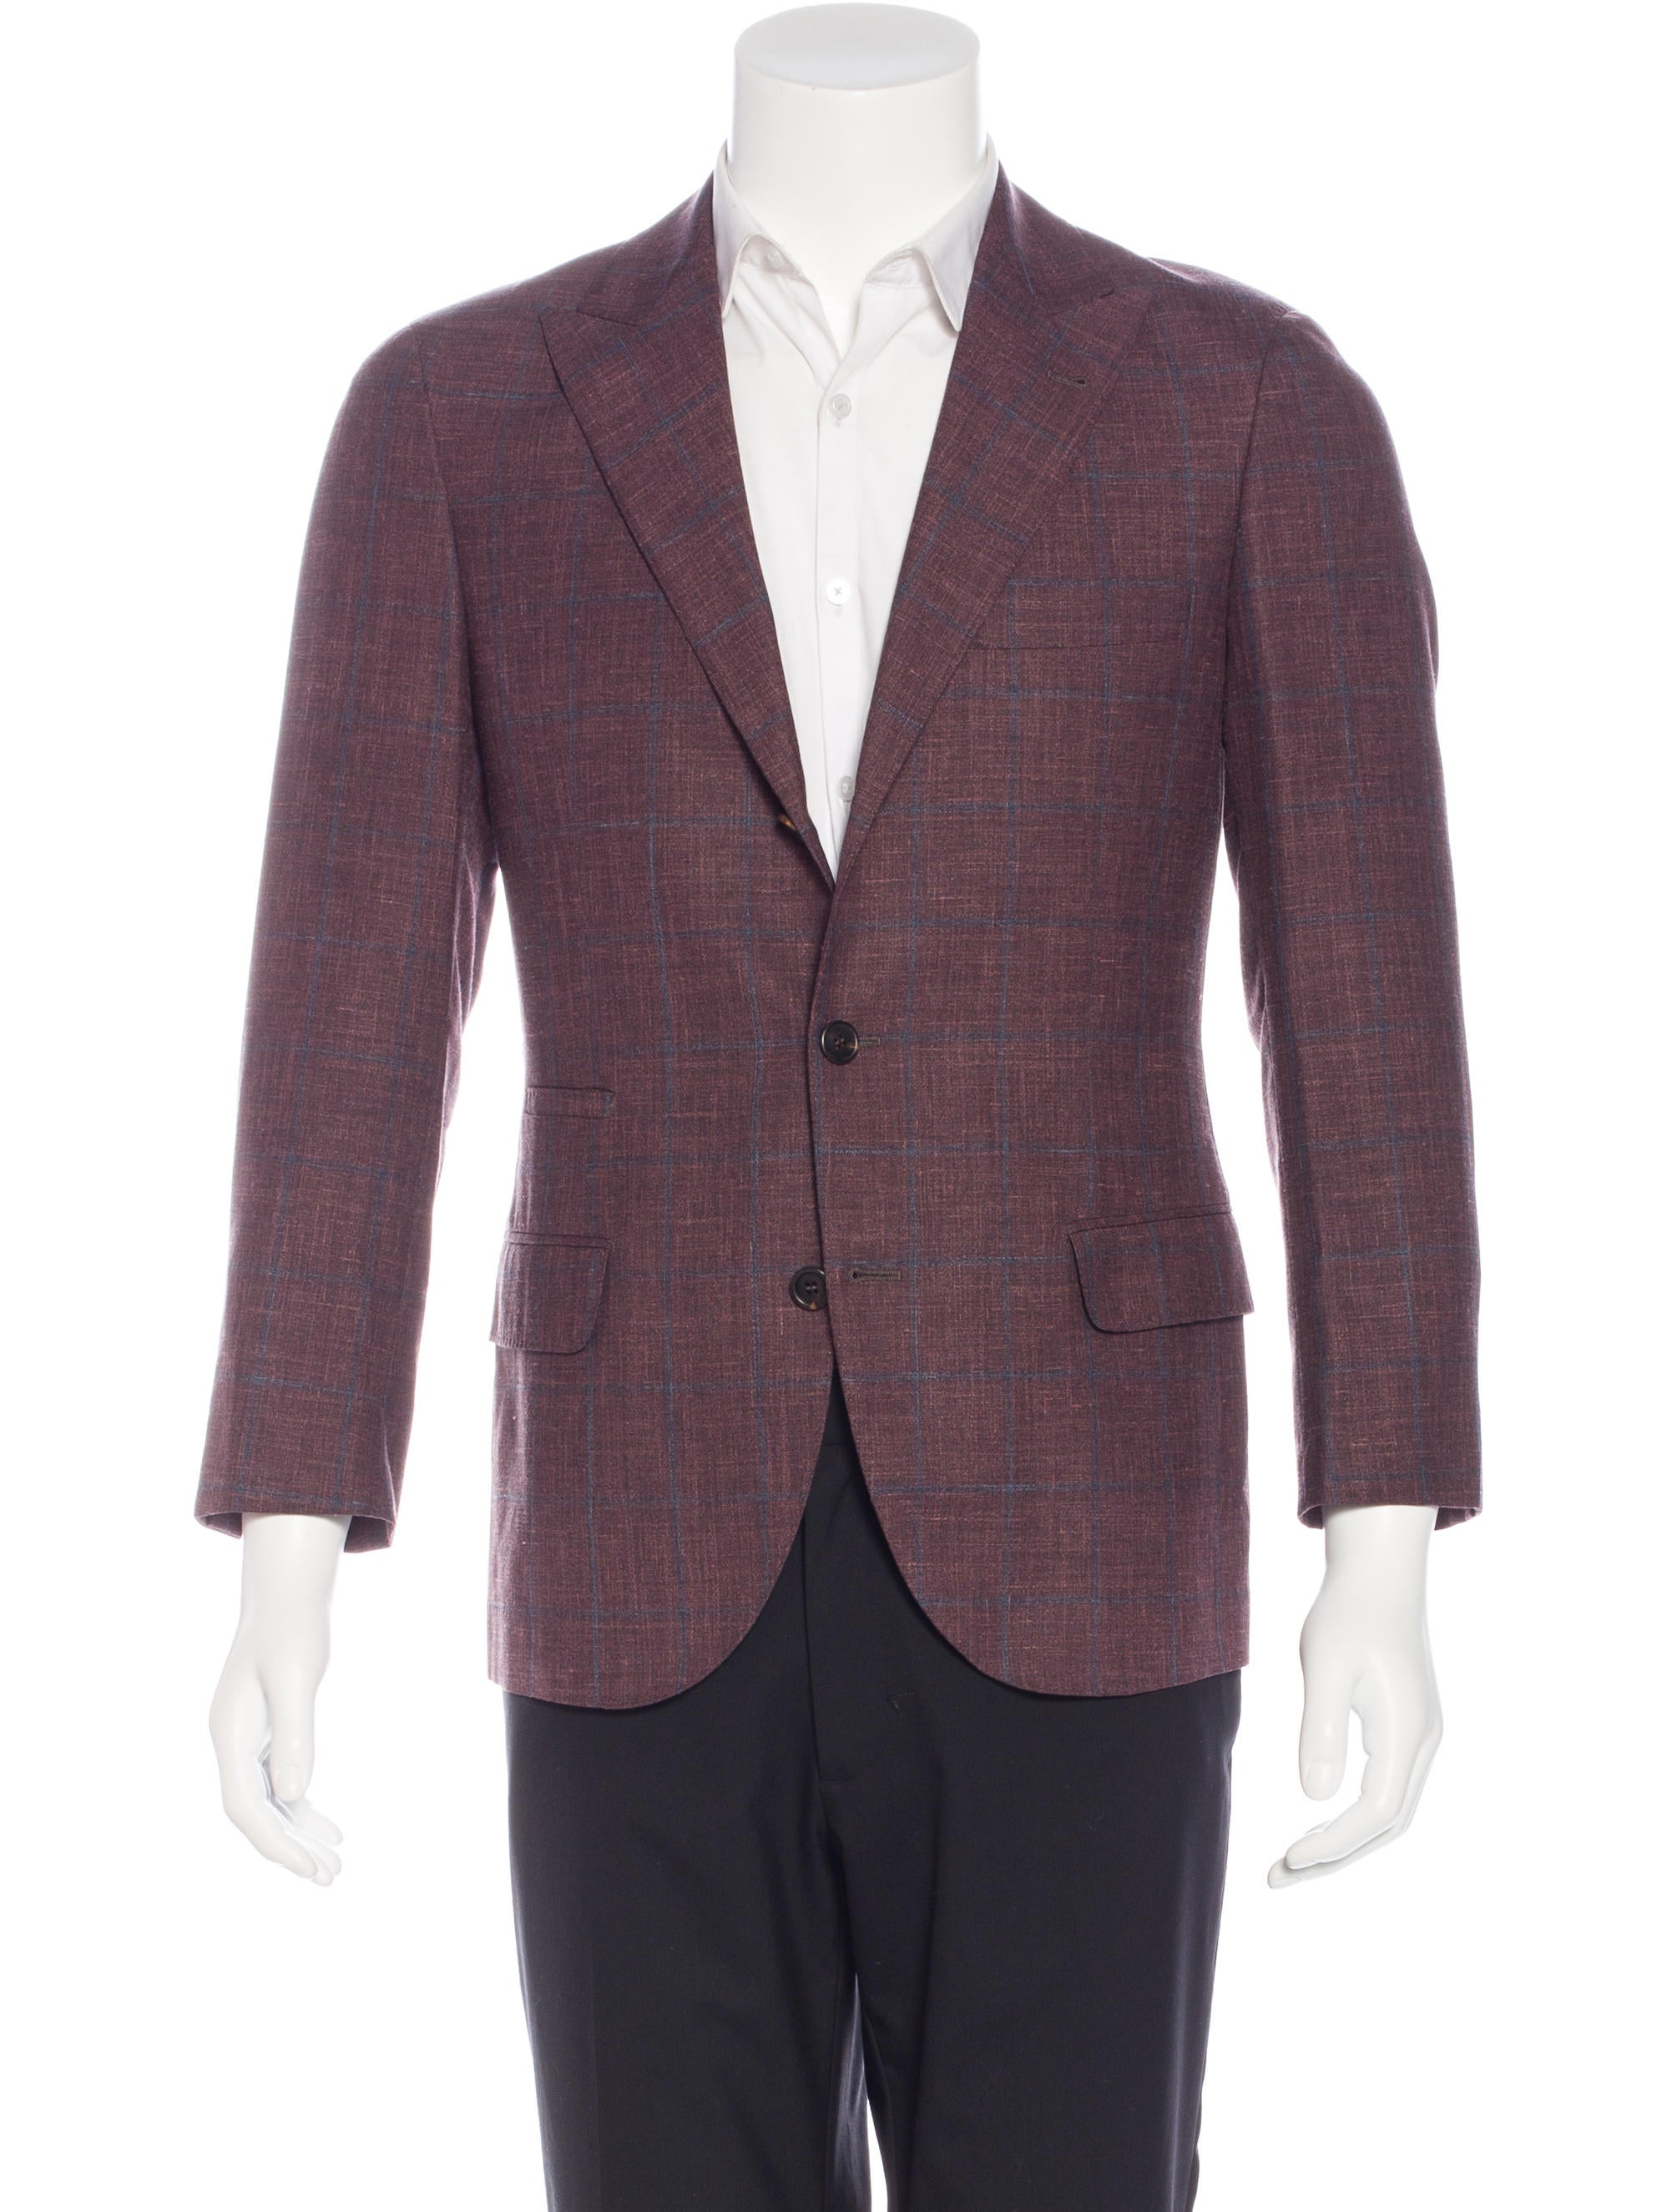 Shop for men's blazers, sport jackets & sportcoats online at gravitybox.ga Browse the latest sportcoat styles from Jos. A Bank. FREE shipping on orders over $